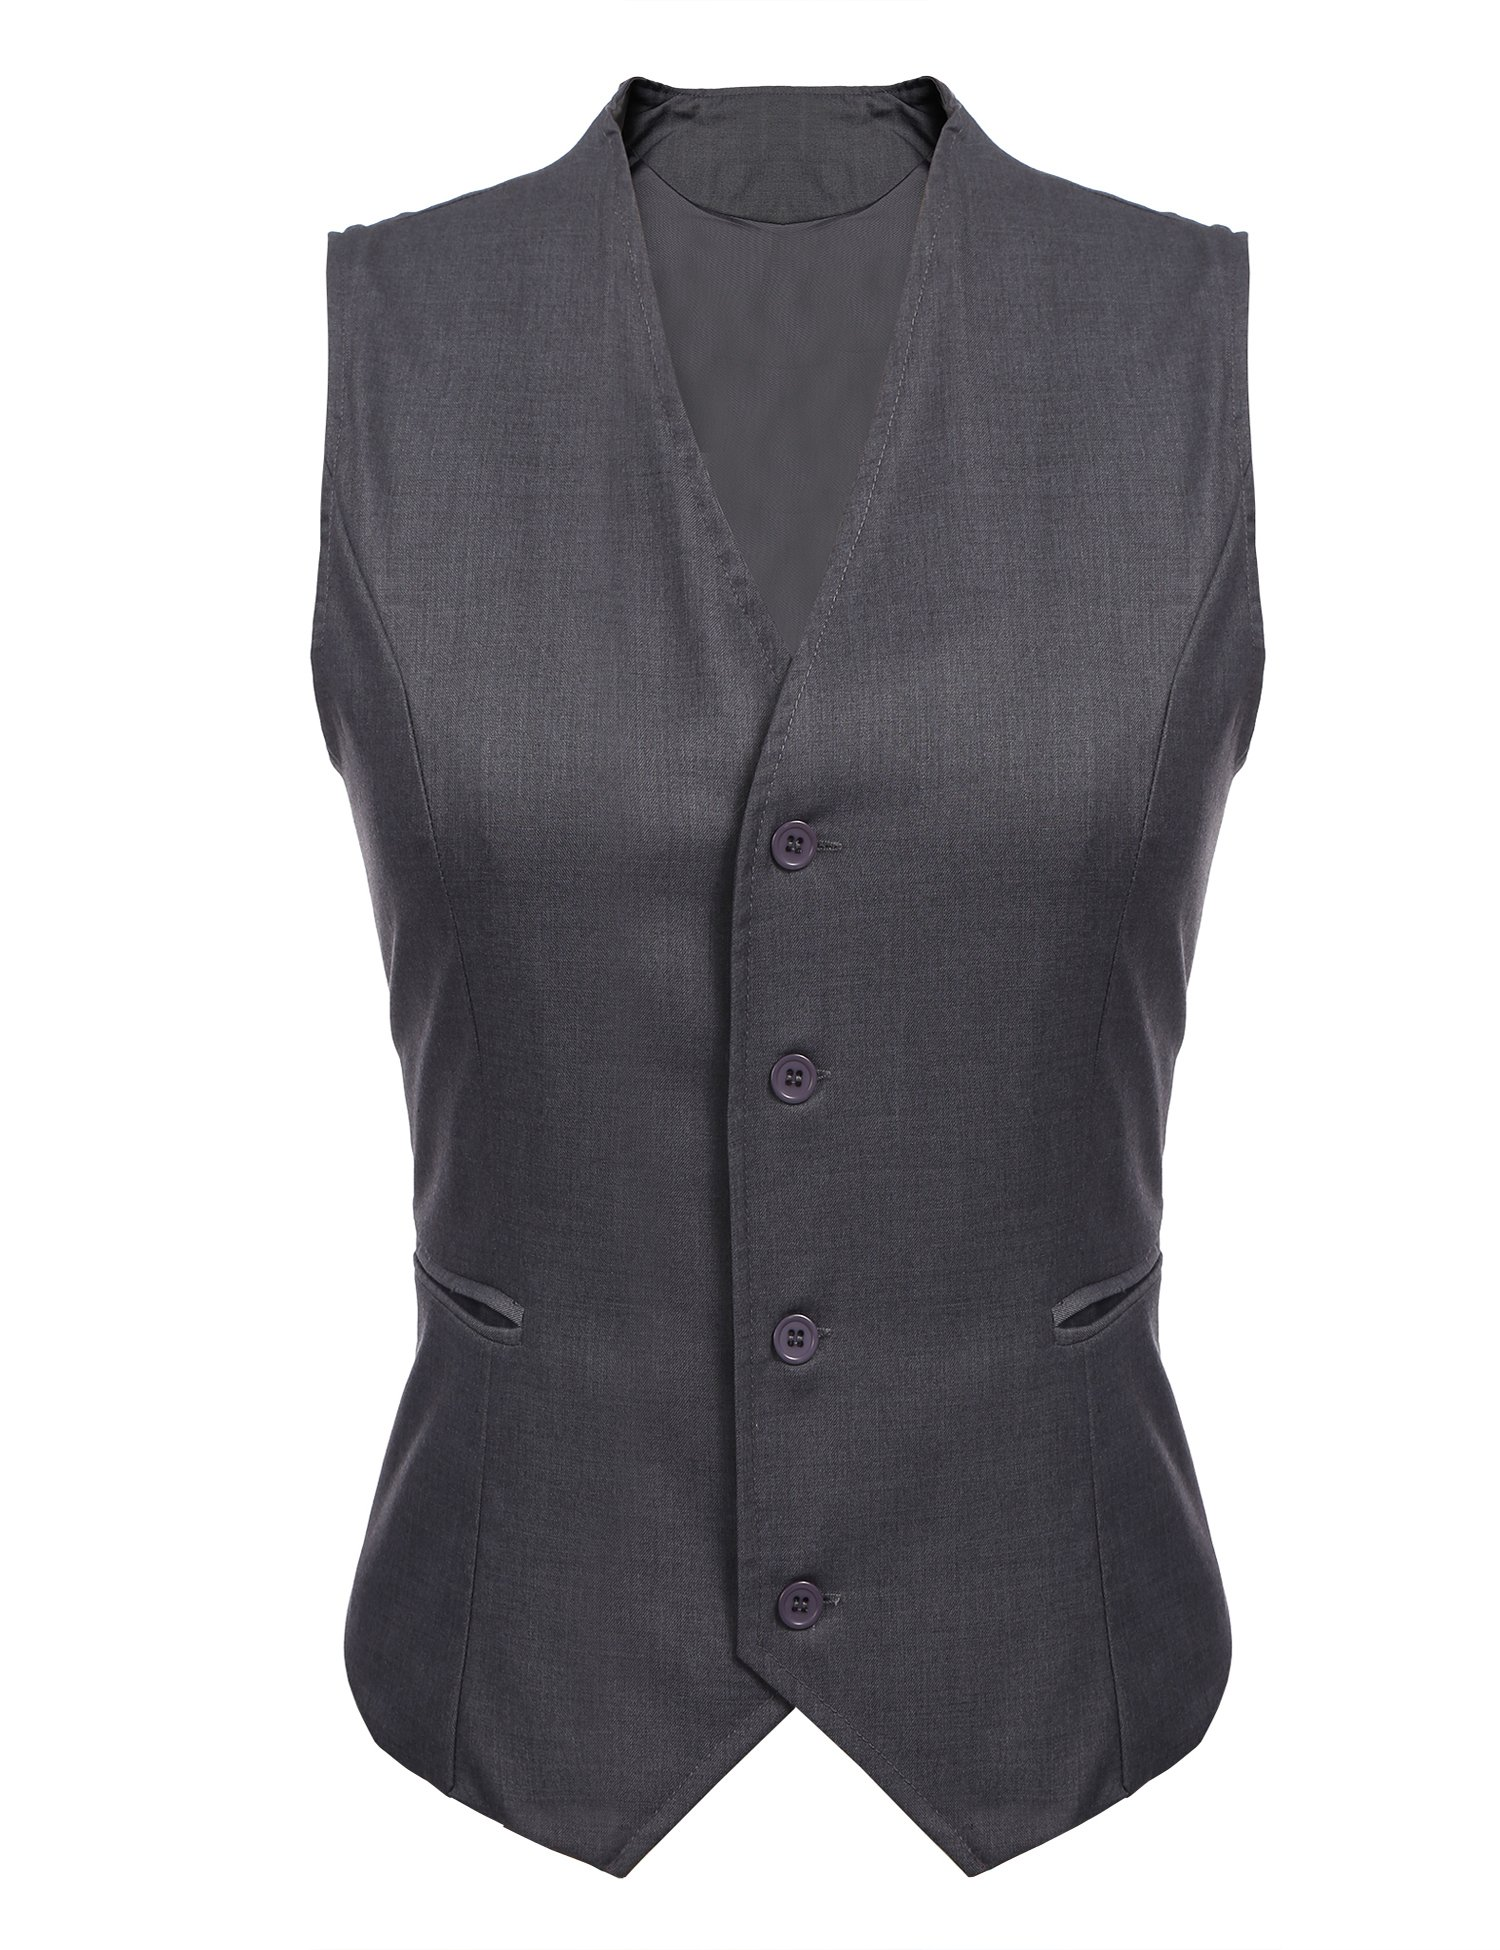 Gumod Women's Waistcoat Fully Lined 4 Button V-Neck Economy Dressy Suit Formal Business Vest,Grey,Large